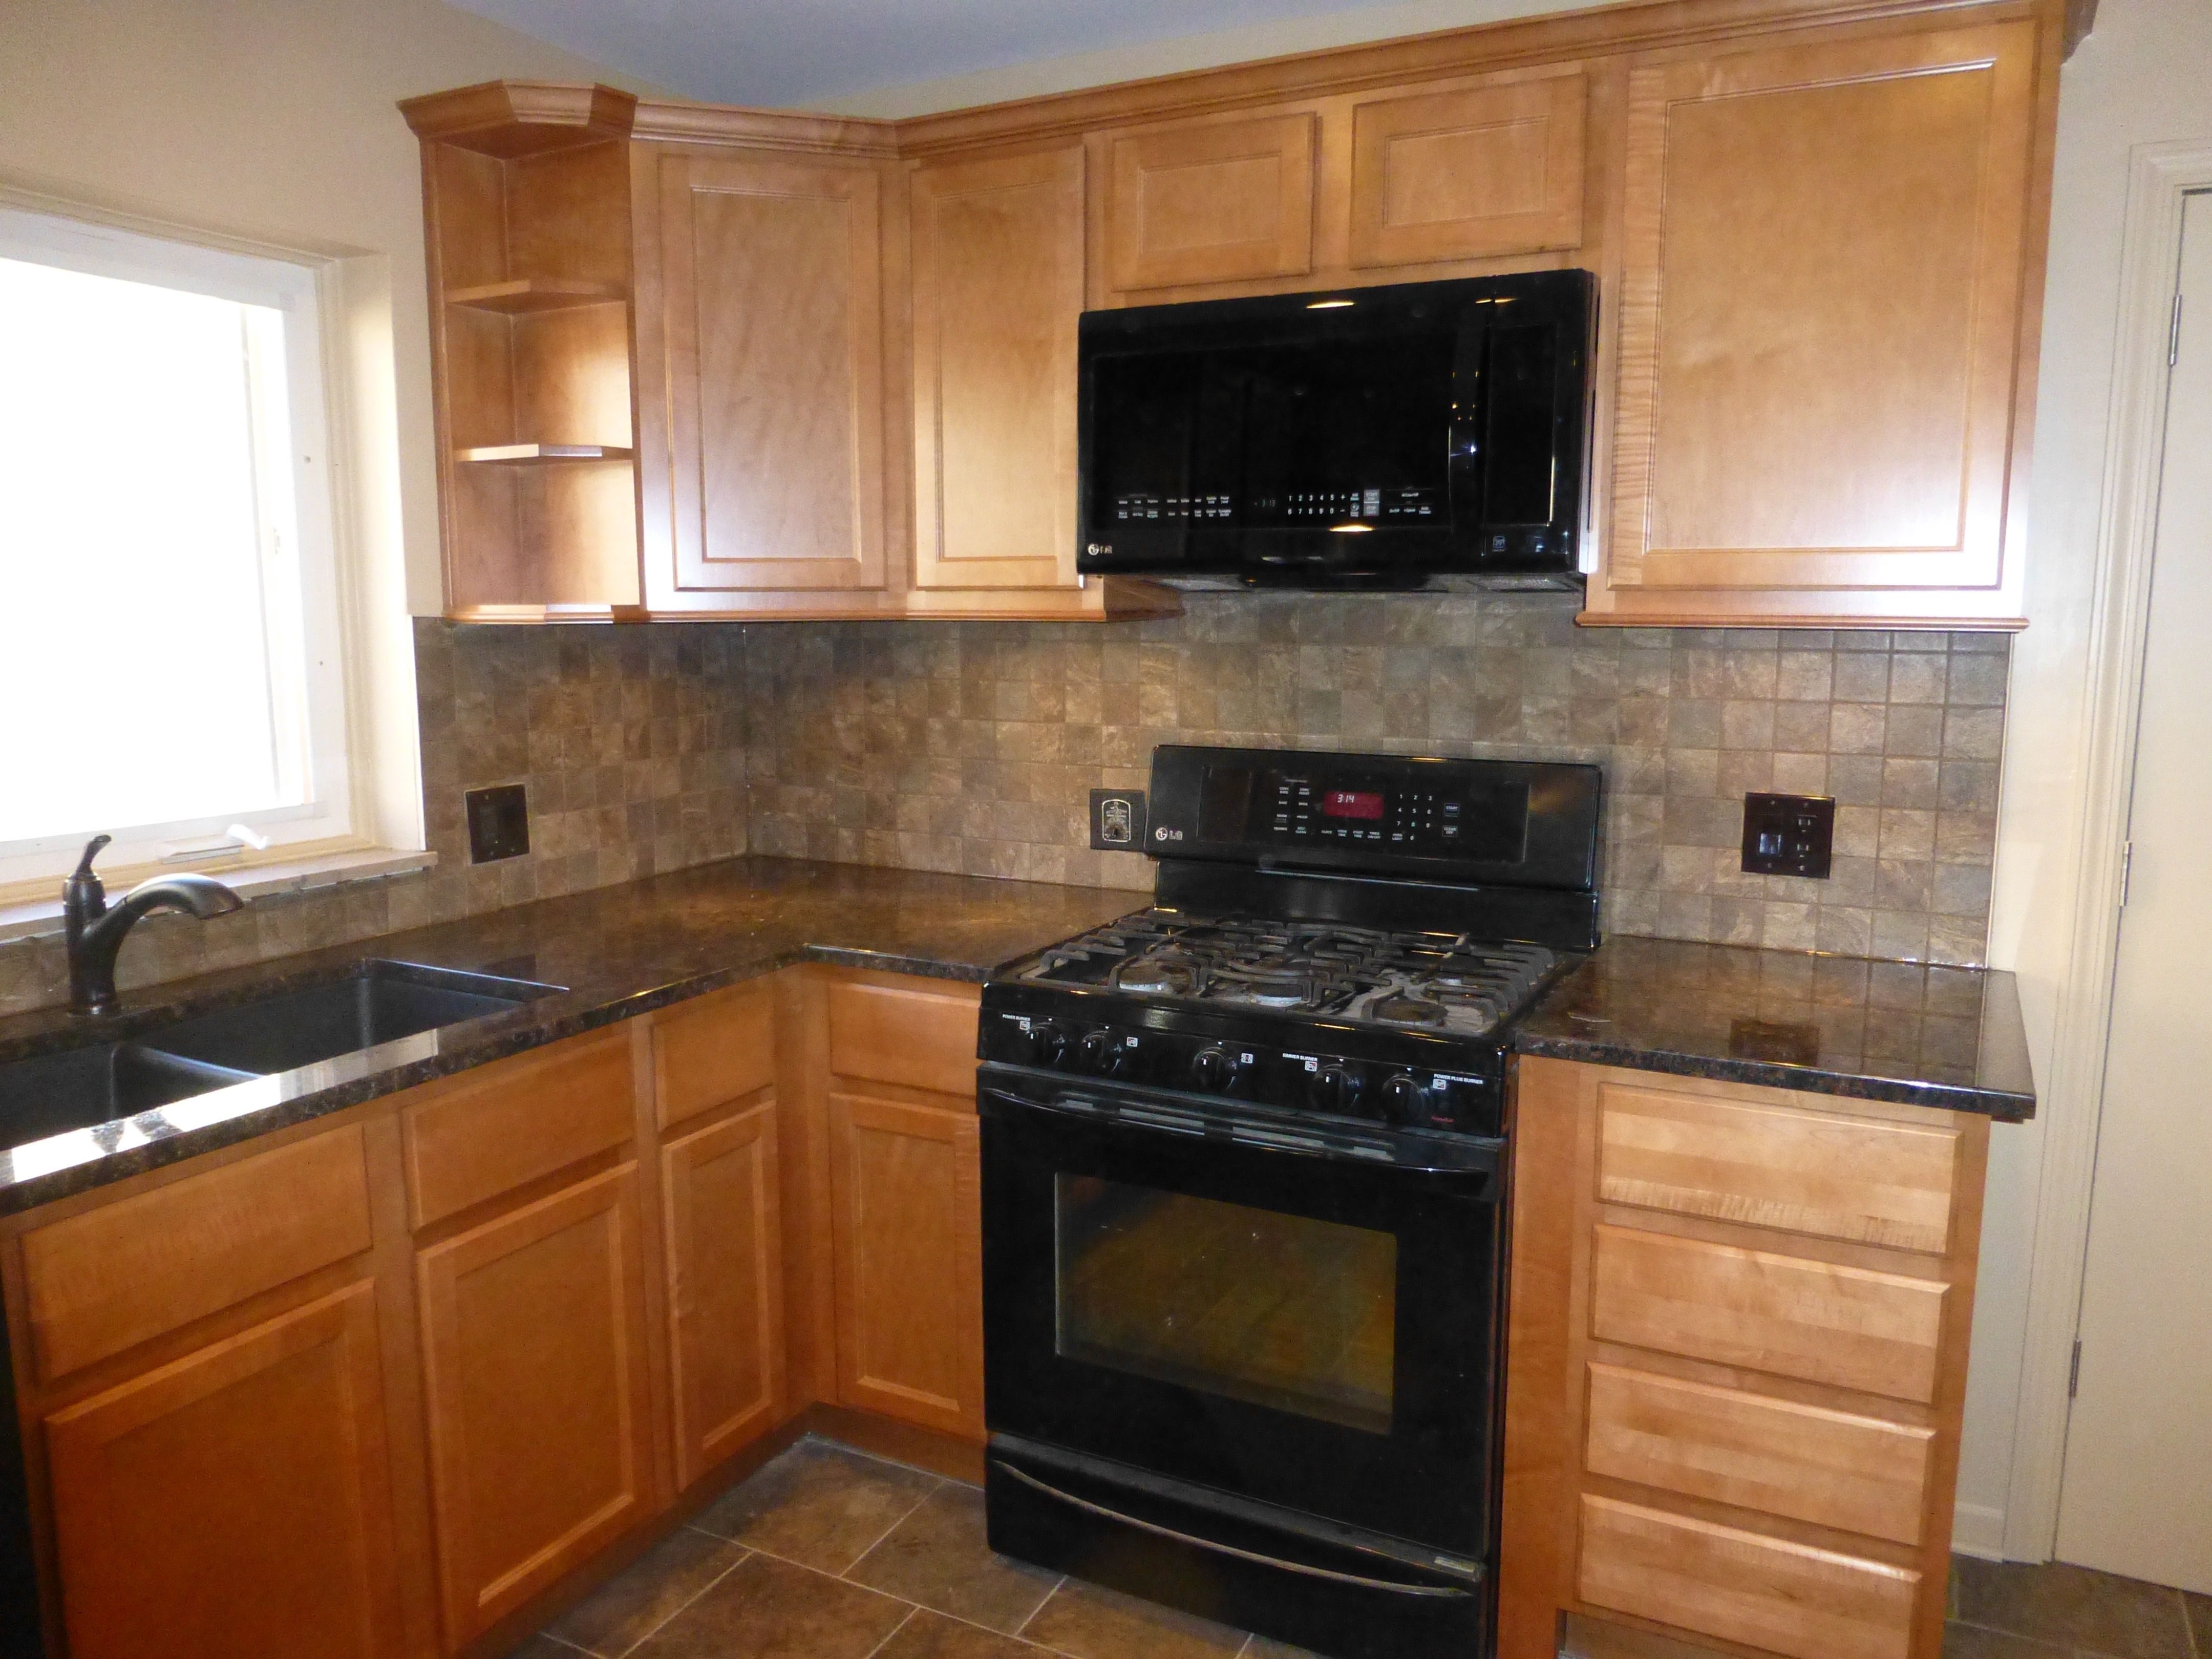 Kitchen Remodel Chicago Il By Archway Home Remodeling